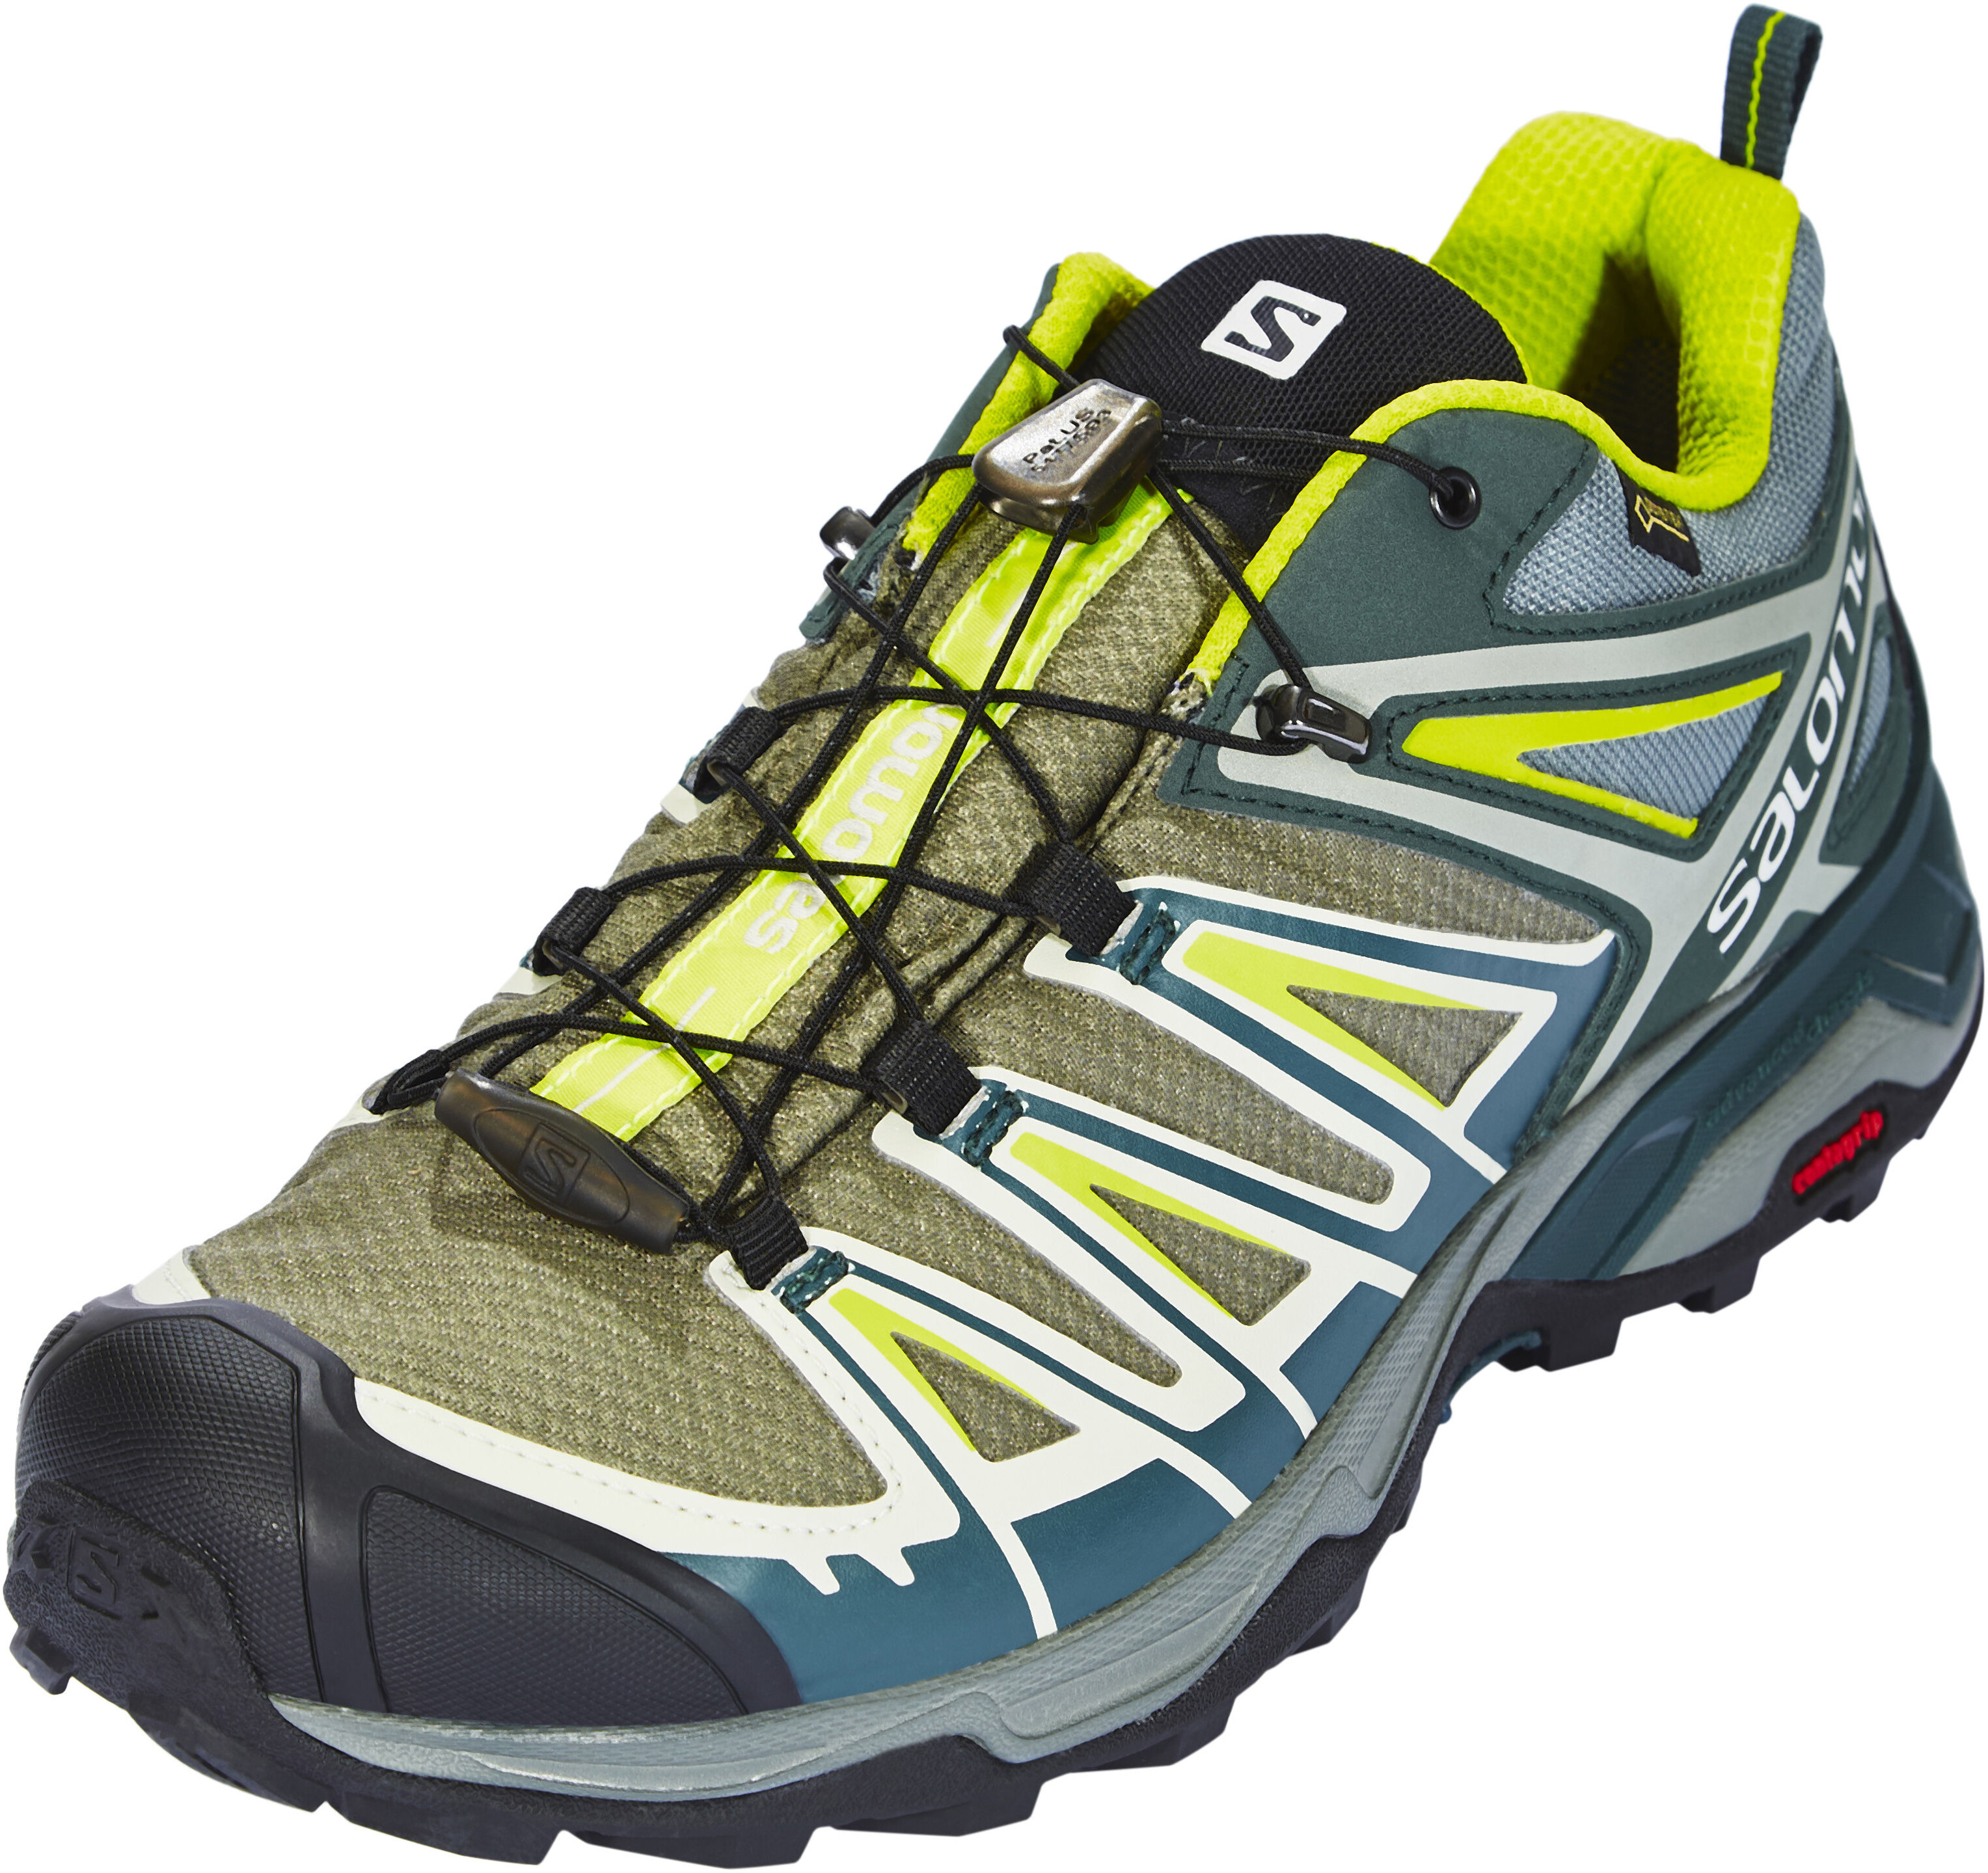 Salomon X Ultra 3 GTX Shoes Men yellow teal at Addnature.co.uk 43c09e4d525a